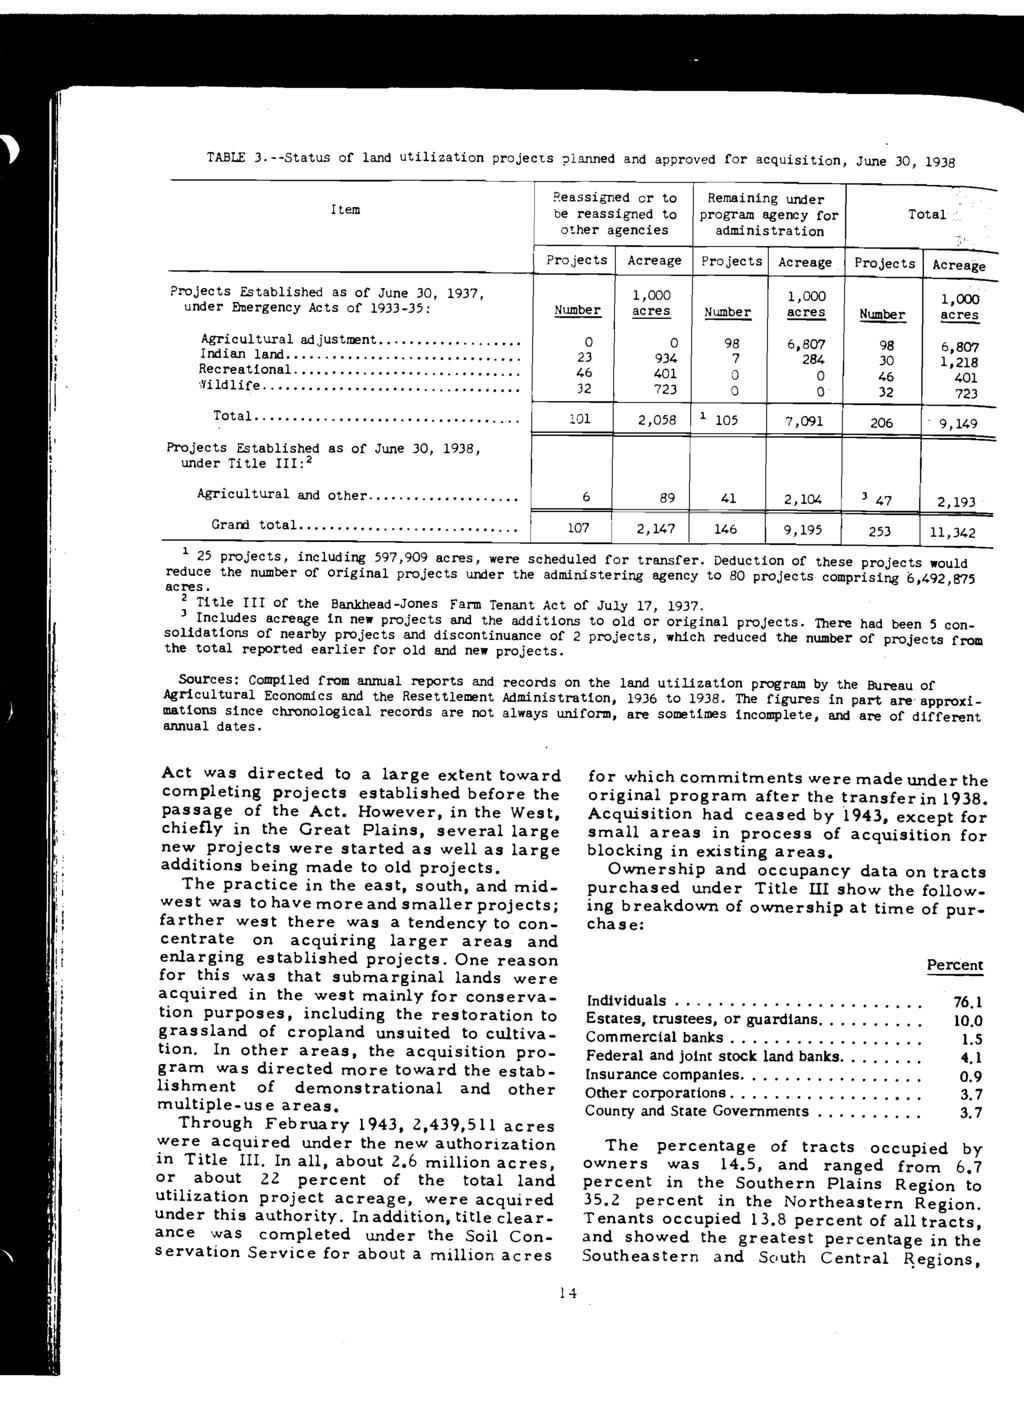 TABLE 3 --Status of land utilization projects 1anned and approved for acquisition June 30, 1938 Item Reassigned or to be reassigned to other agencies Remaining under program agency for administration